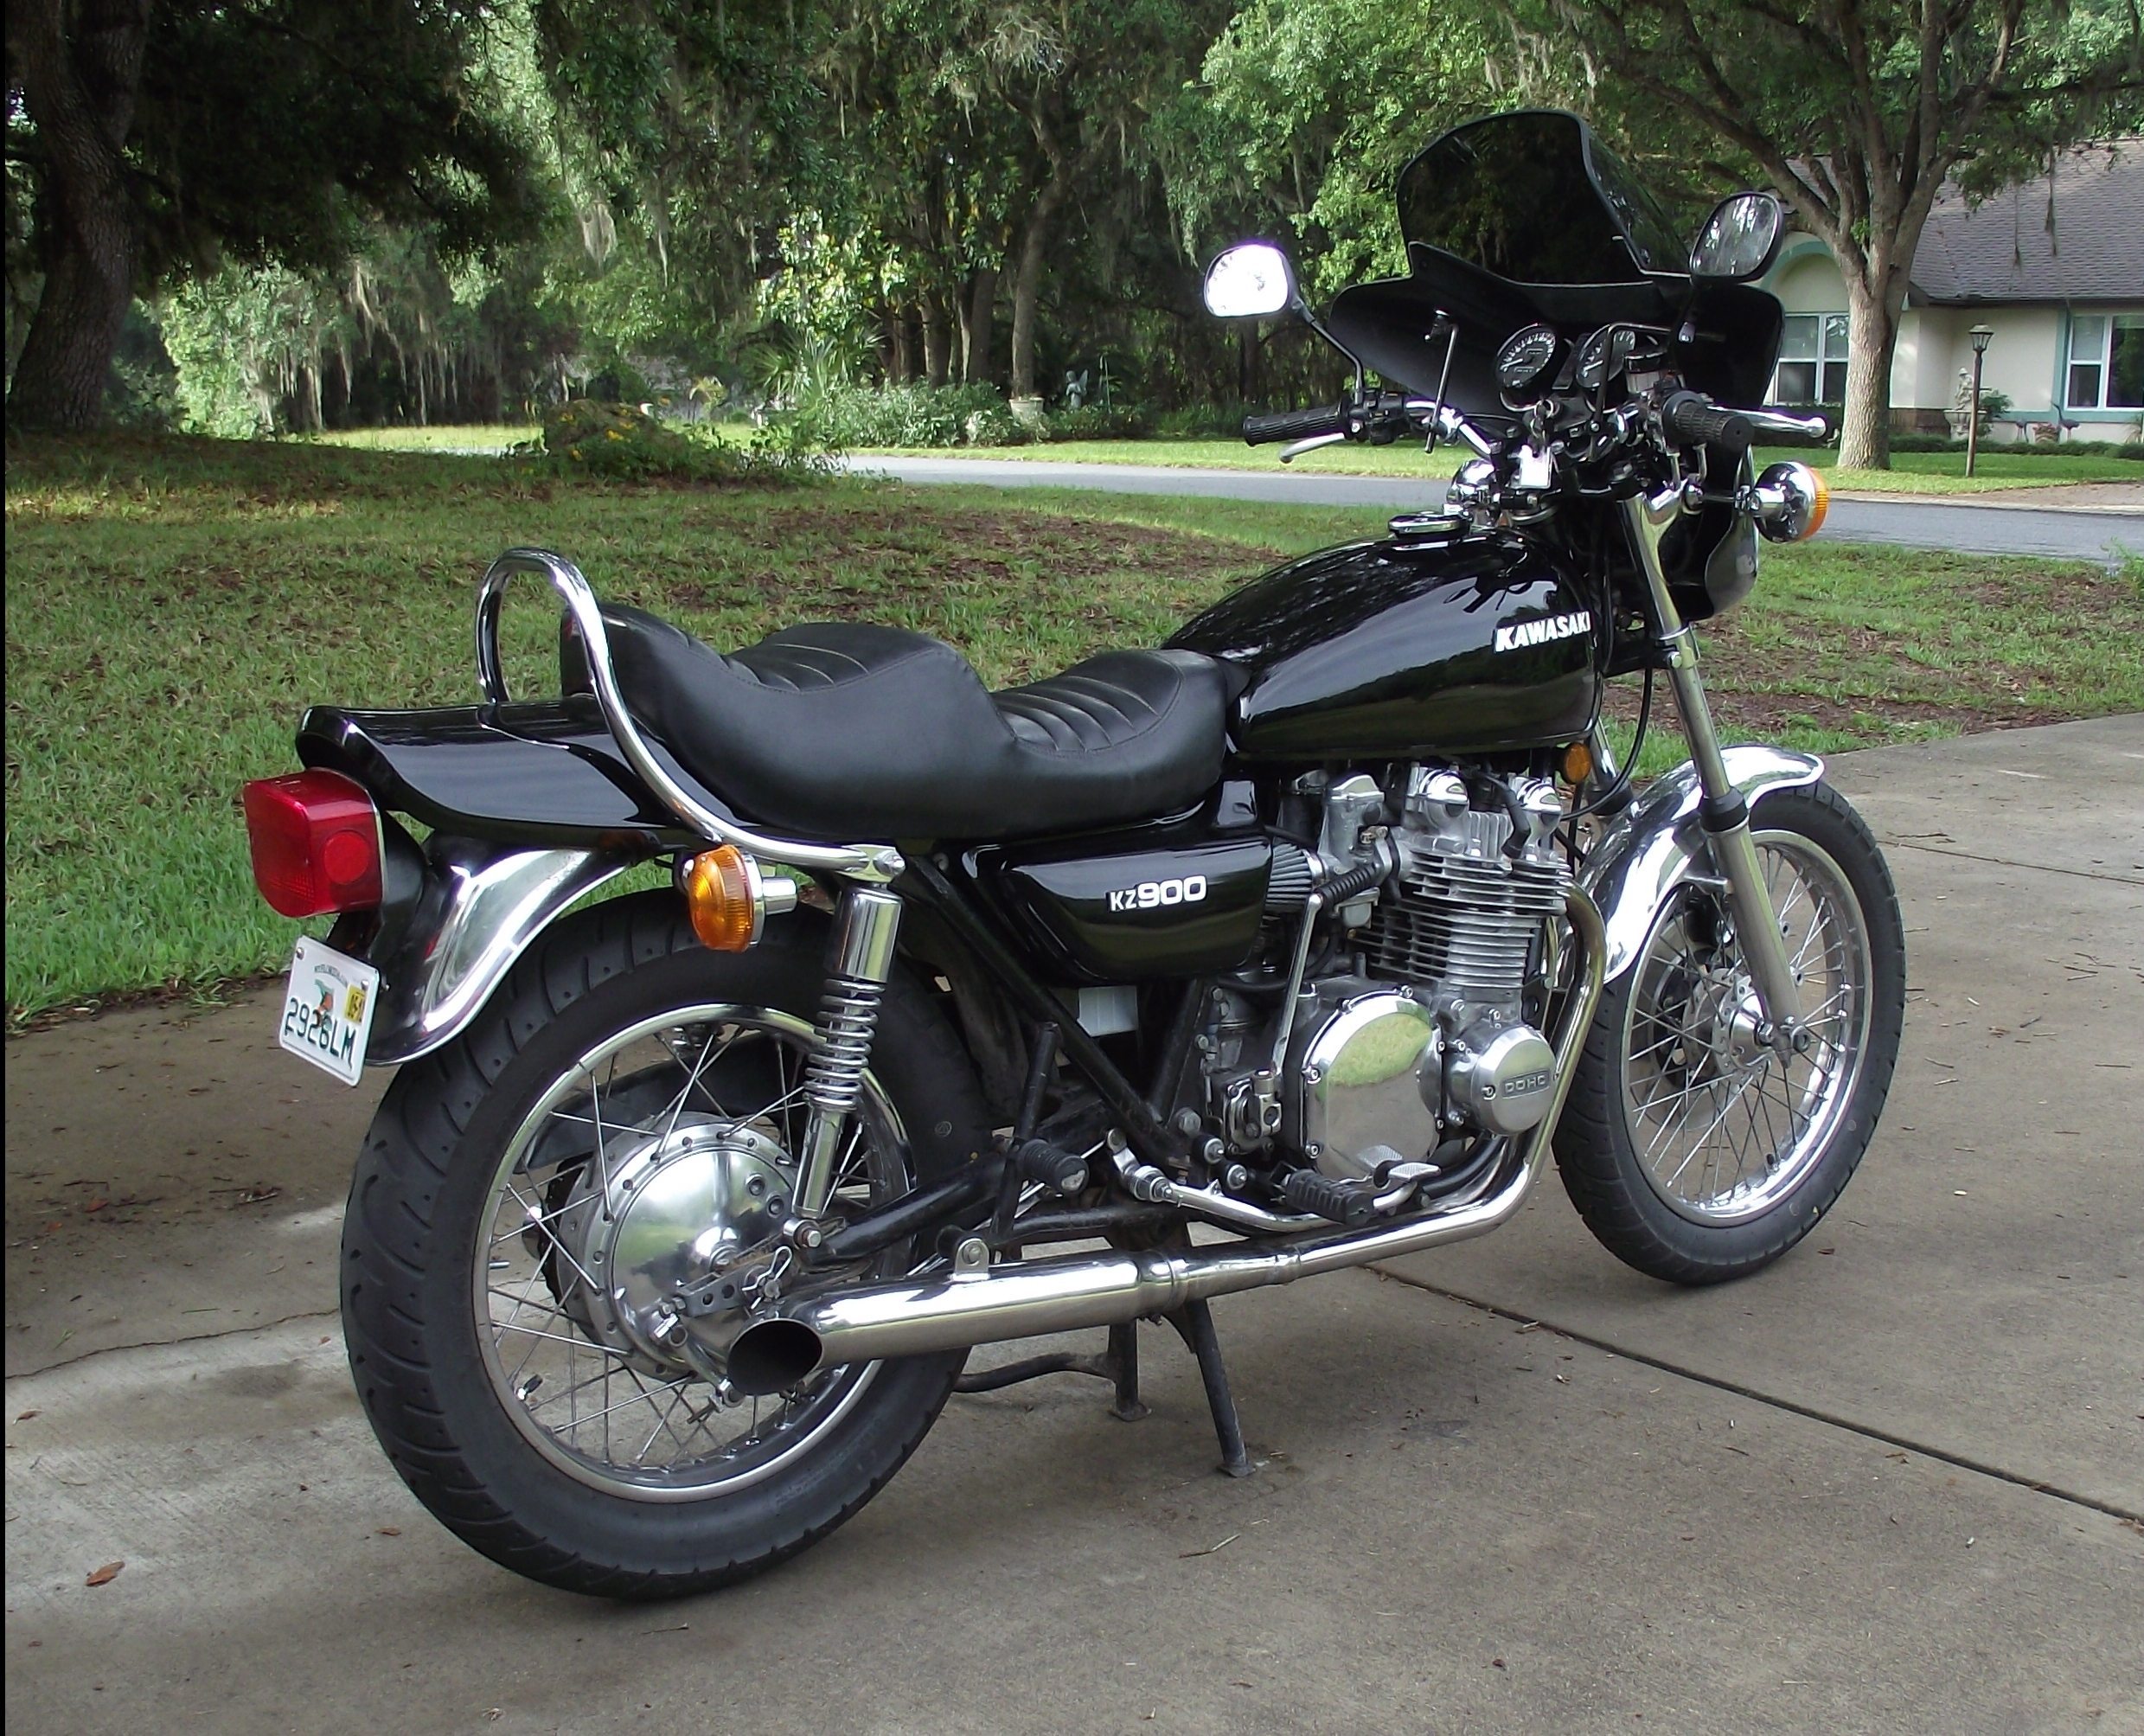 Bike Of The Month: Joe's (KZJOE900) 1976 KZ900-A4